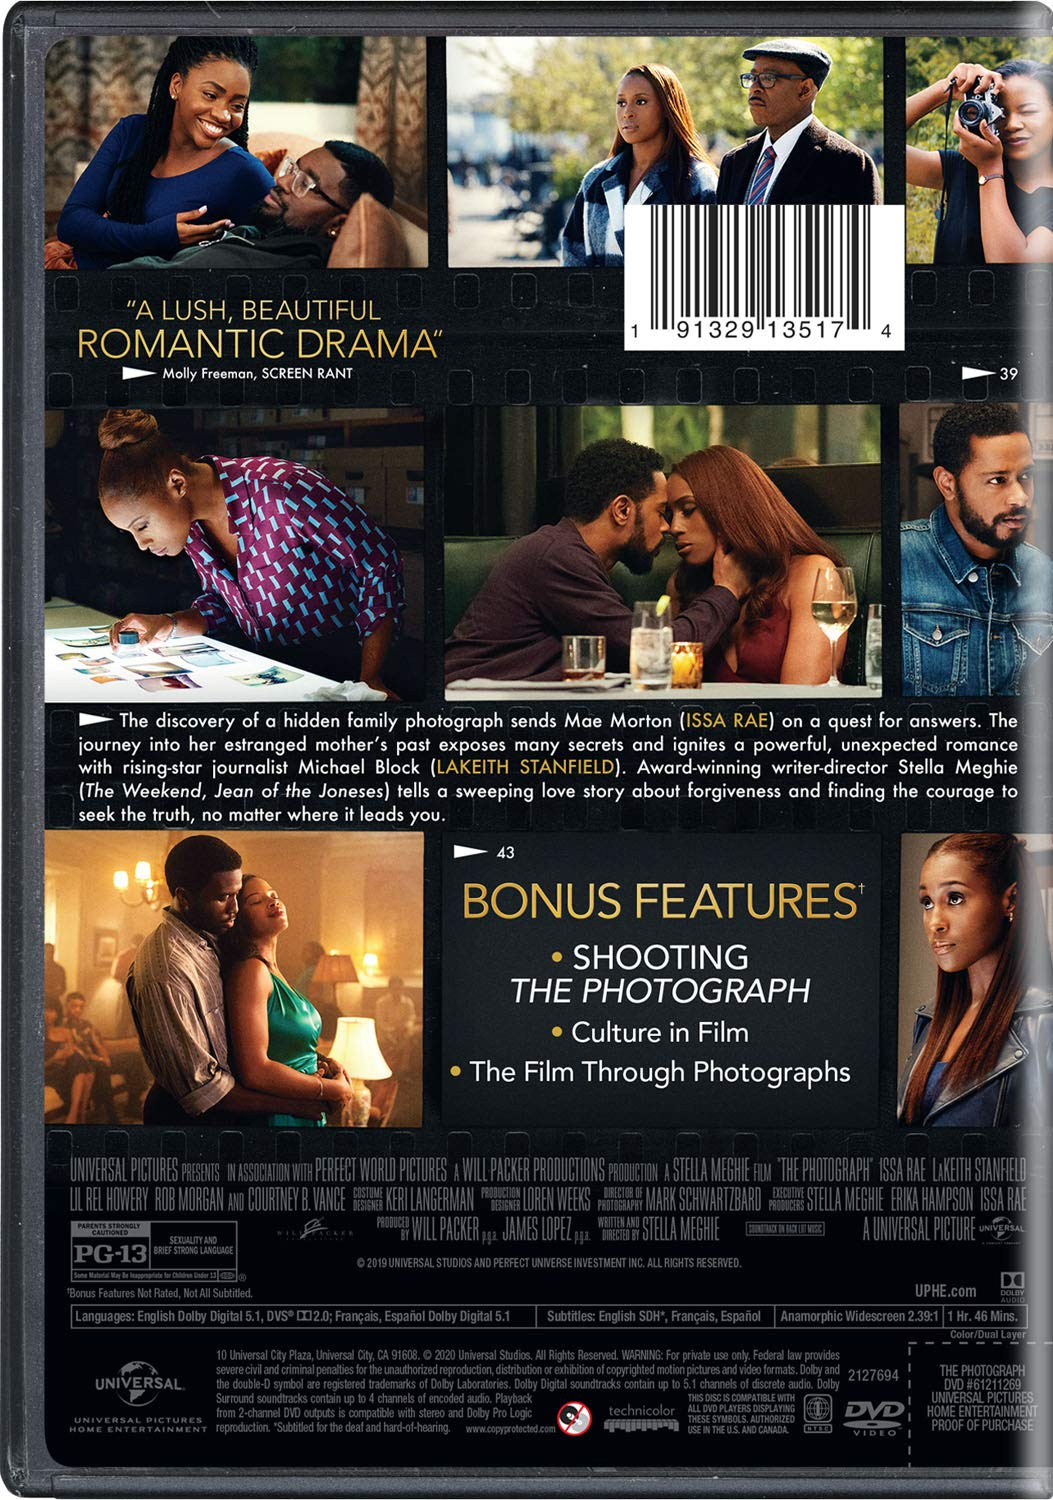 Amazon.com: The Photograph: Issa Rae, LaKeith Stanfield, Lil Rel Howery,  Rob Morgan, Courtney B. Vance, Stella Meghie, Will Packer, James Lopez,  Stella Meghie: Movies & TV